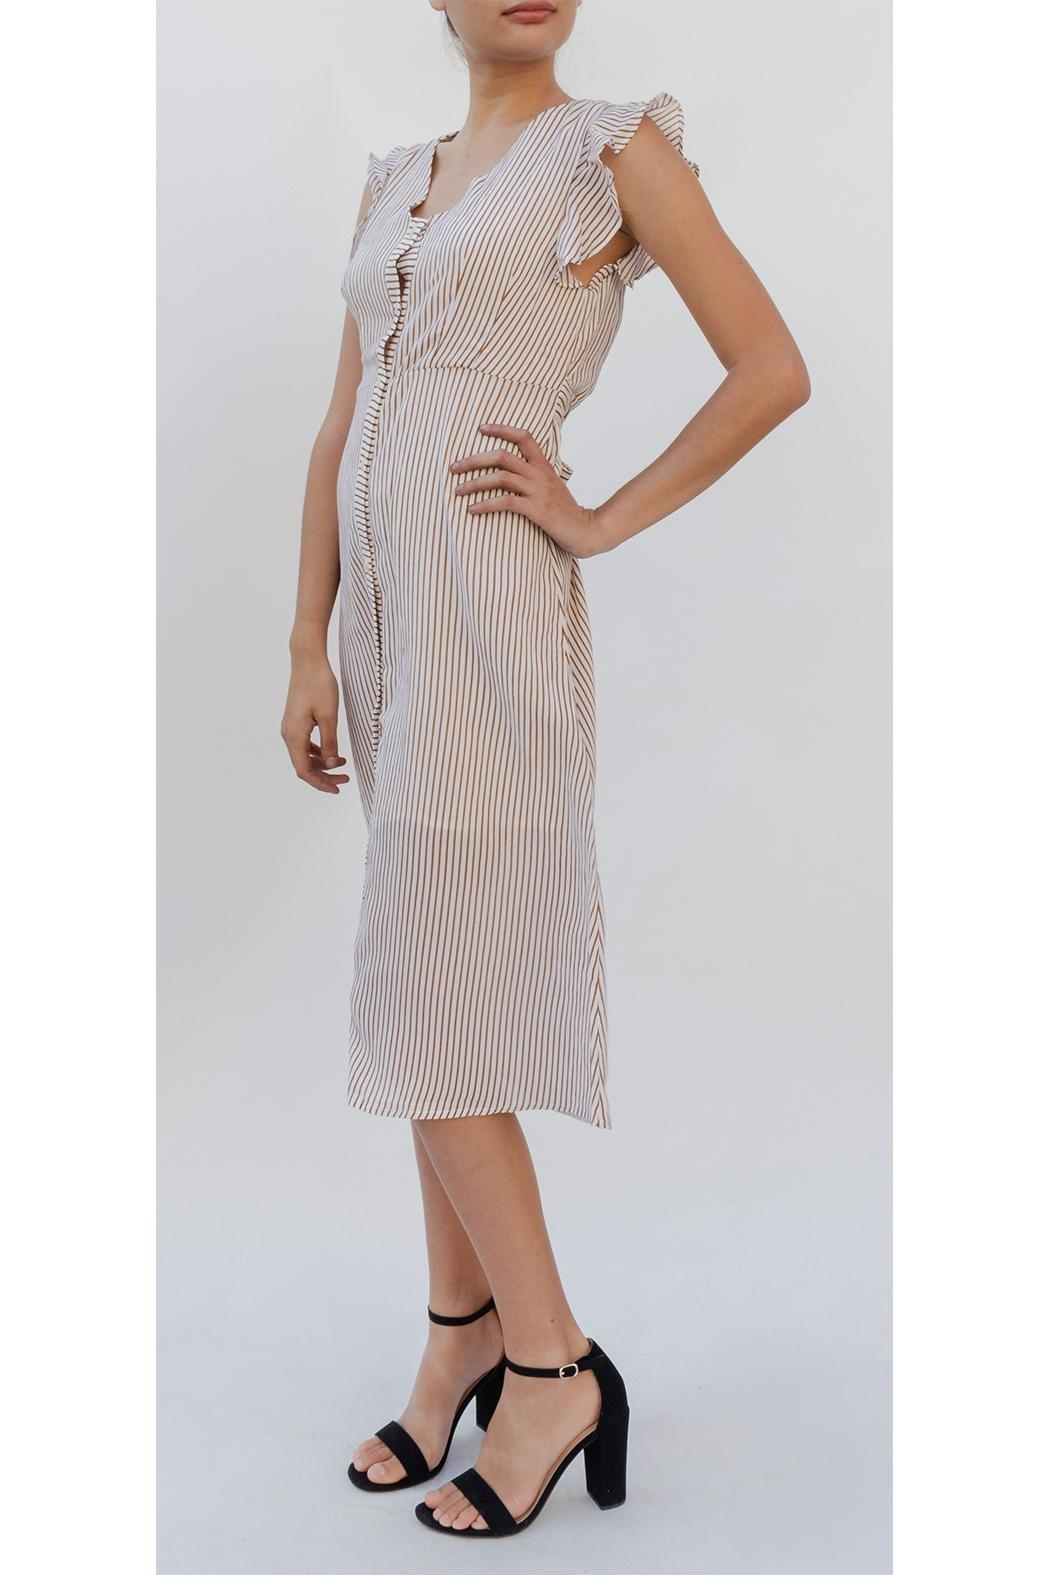 3f8cf3a8d Hem & Thread Striped Button-Down Dress from Los Angeles by Goldie's ...